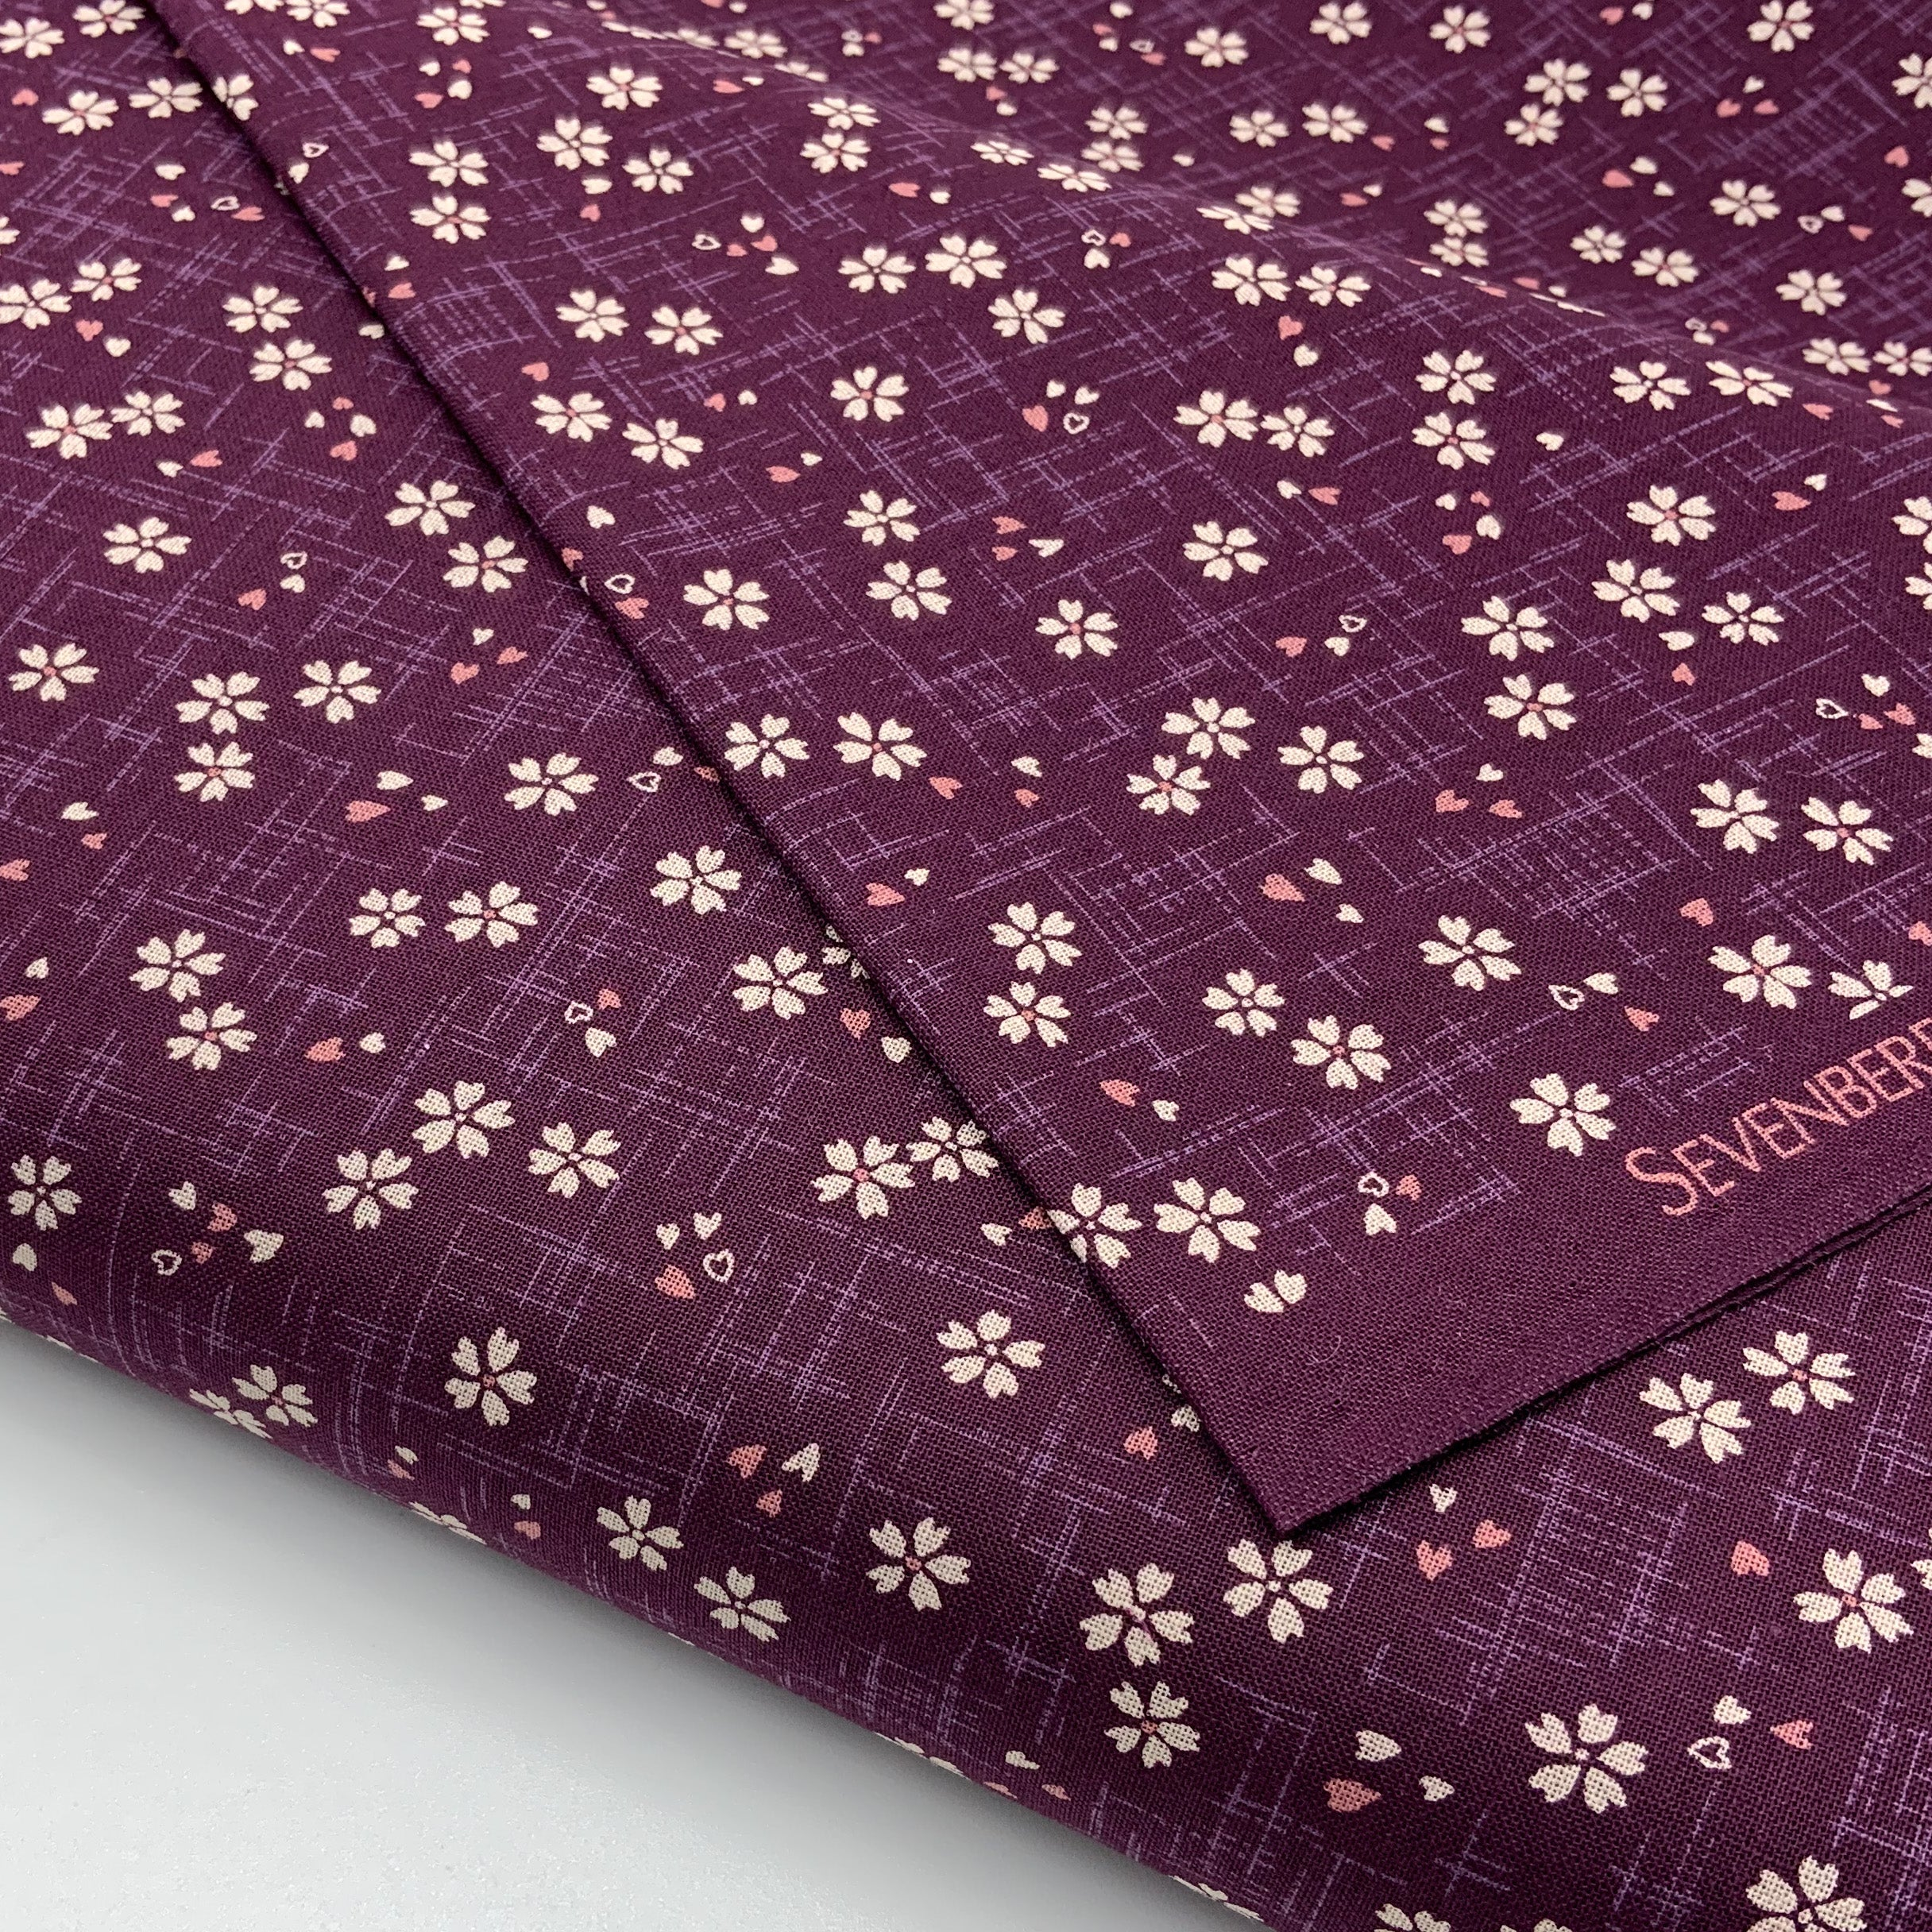 Japanese Cotton Sheeting Print - Cherry Blossom with Falling Petals Purple